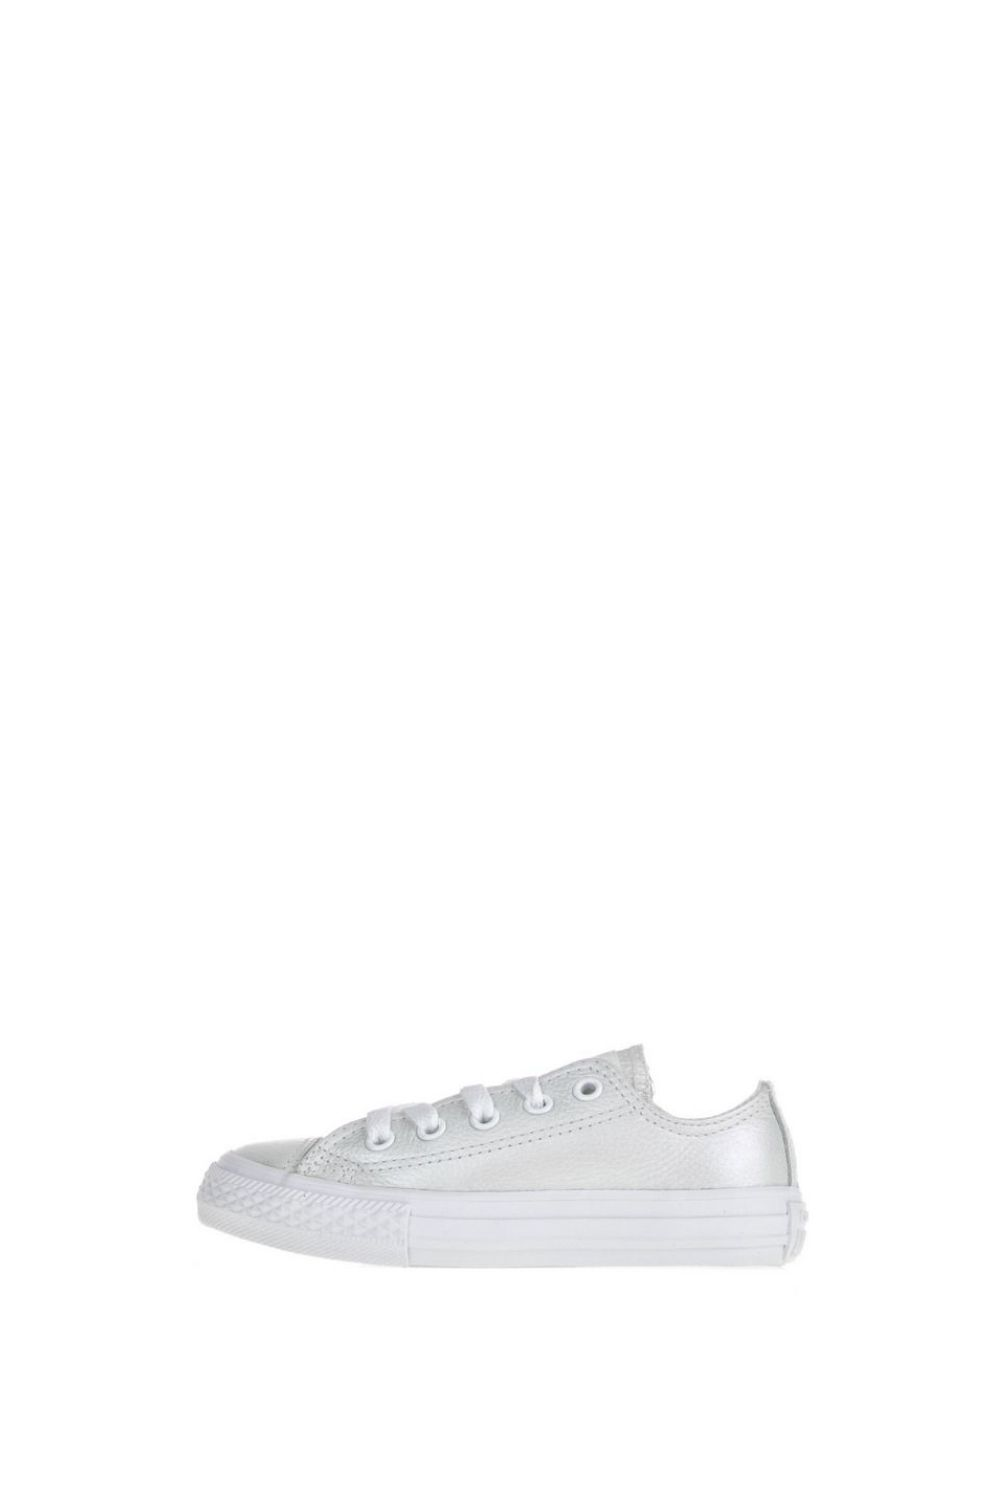 CONVERSE – Παιδικά sneakers CONVERSE Chuck Taylor All Star Ox λευκά